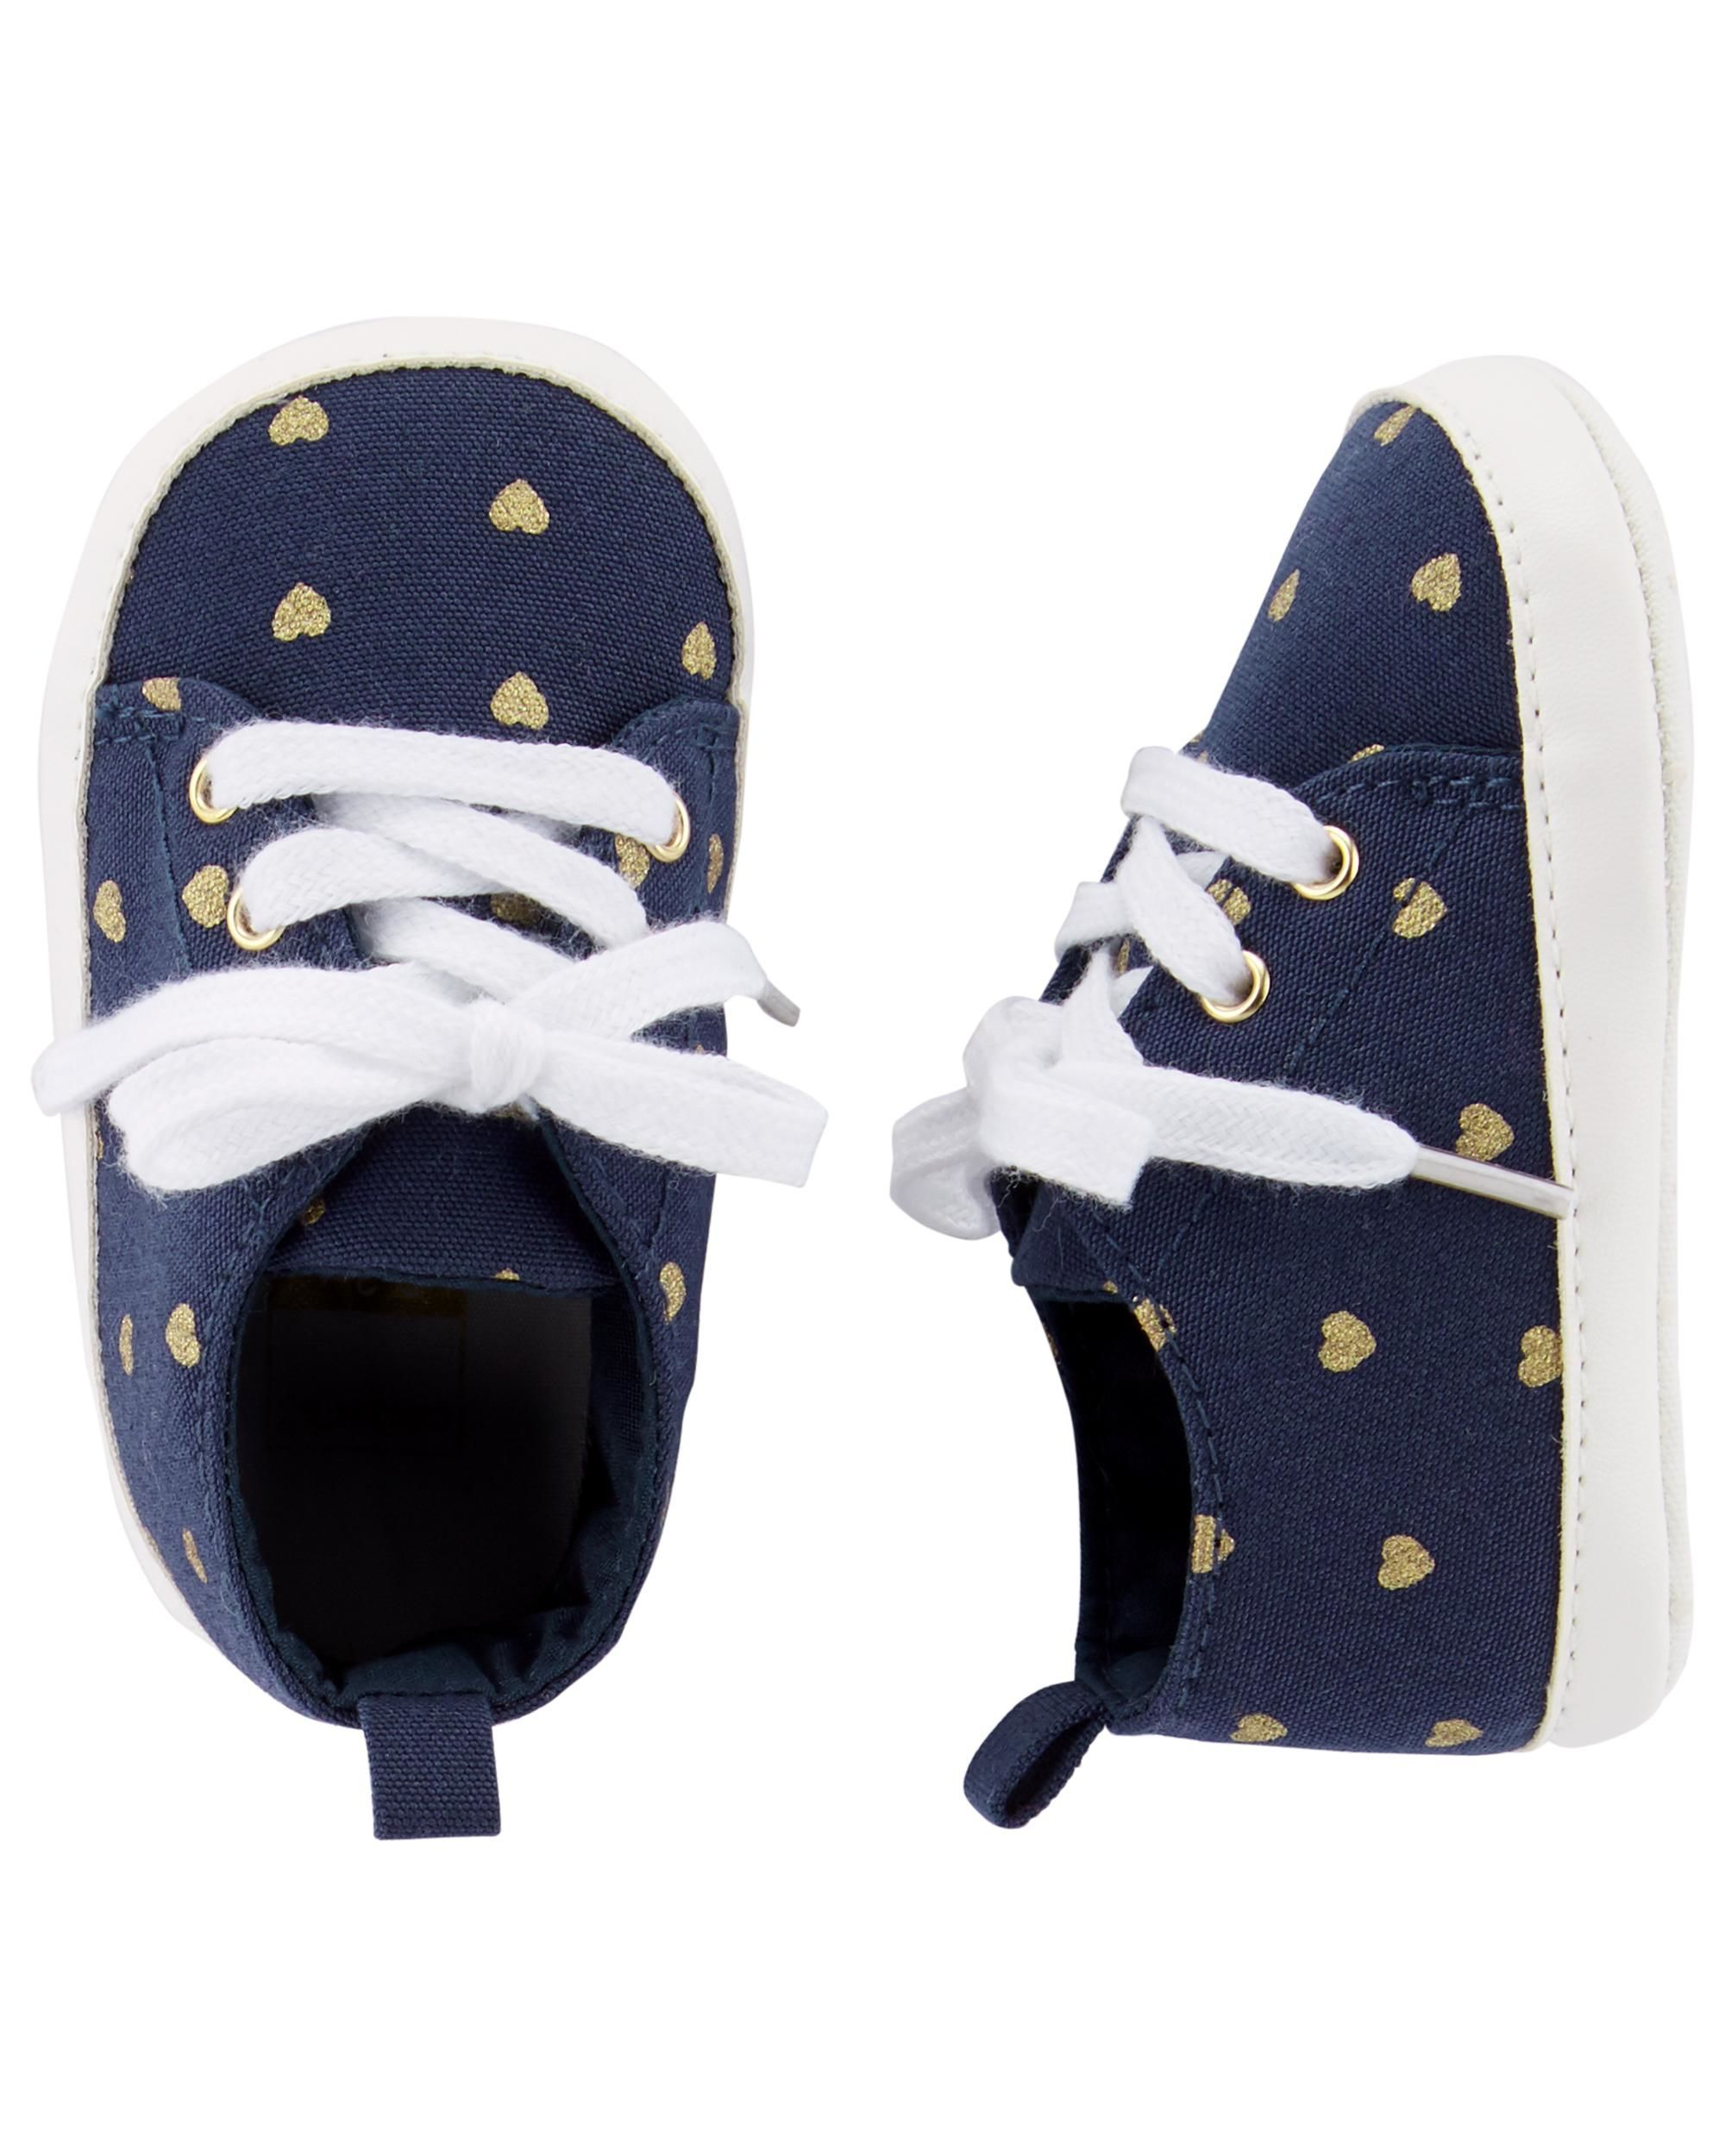 5c364d120 Heart Sneaker Baby Shoes | Love it | Baby sneakers, Carters baby ...